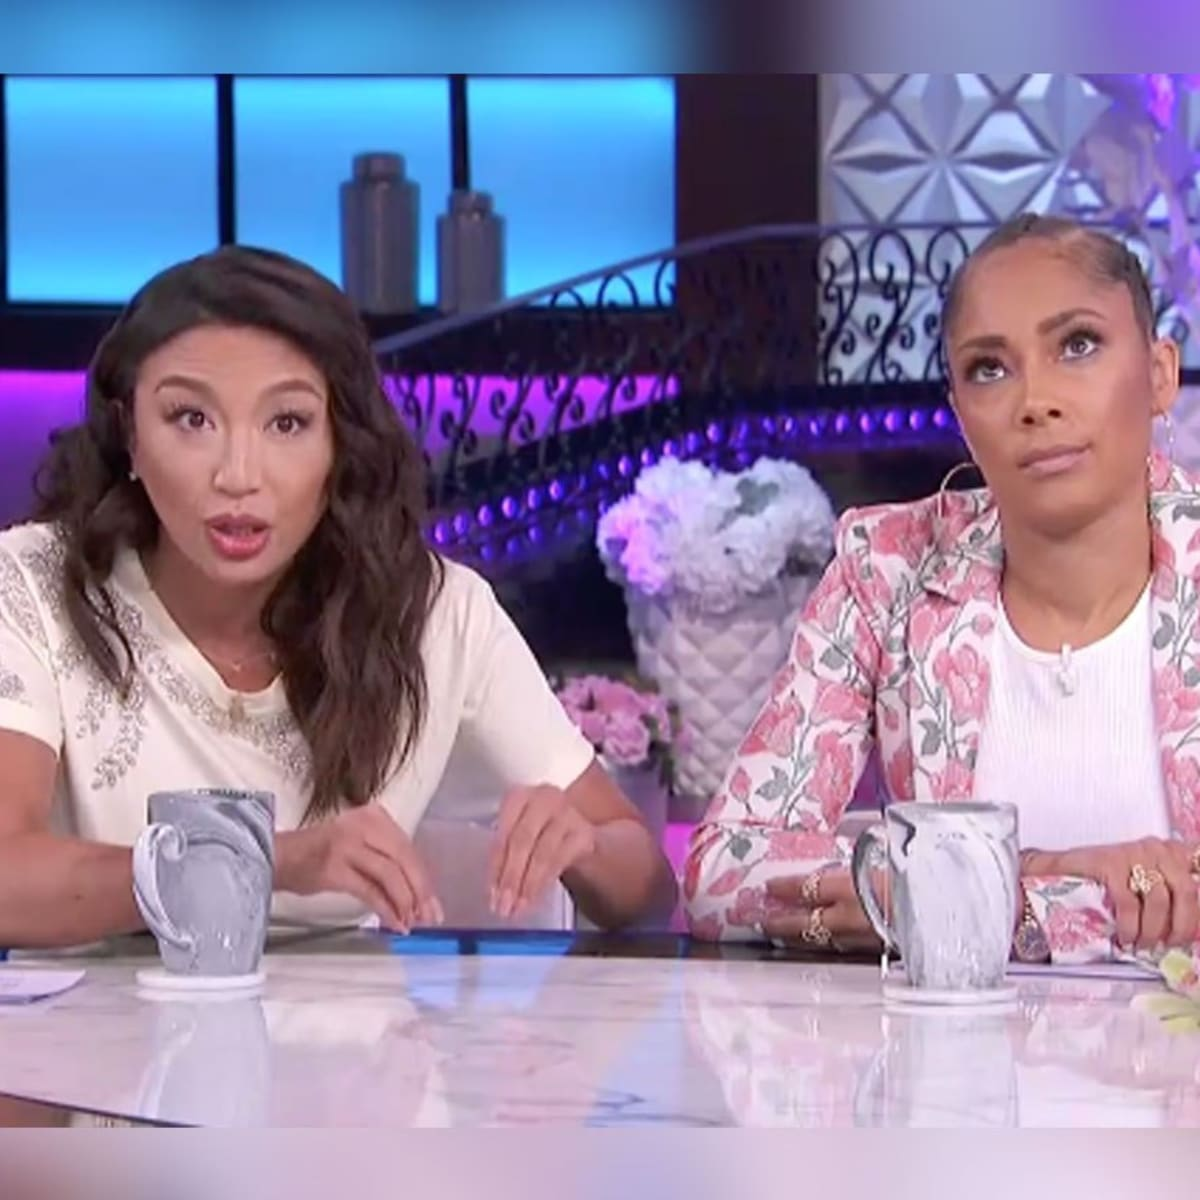 Amanda Seales QUITS 'The Real' After 'FIGHT' with Jeannie Mai: Black Voices Need To Be At The Top Too! - Amanda Seales QUITS 'The Real' After 'FIGHT' with Jeannie Mai: Black Voices Need To Be At The Top Too!